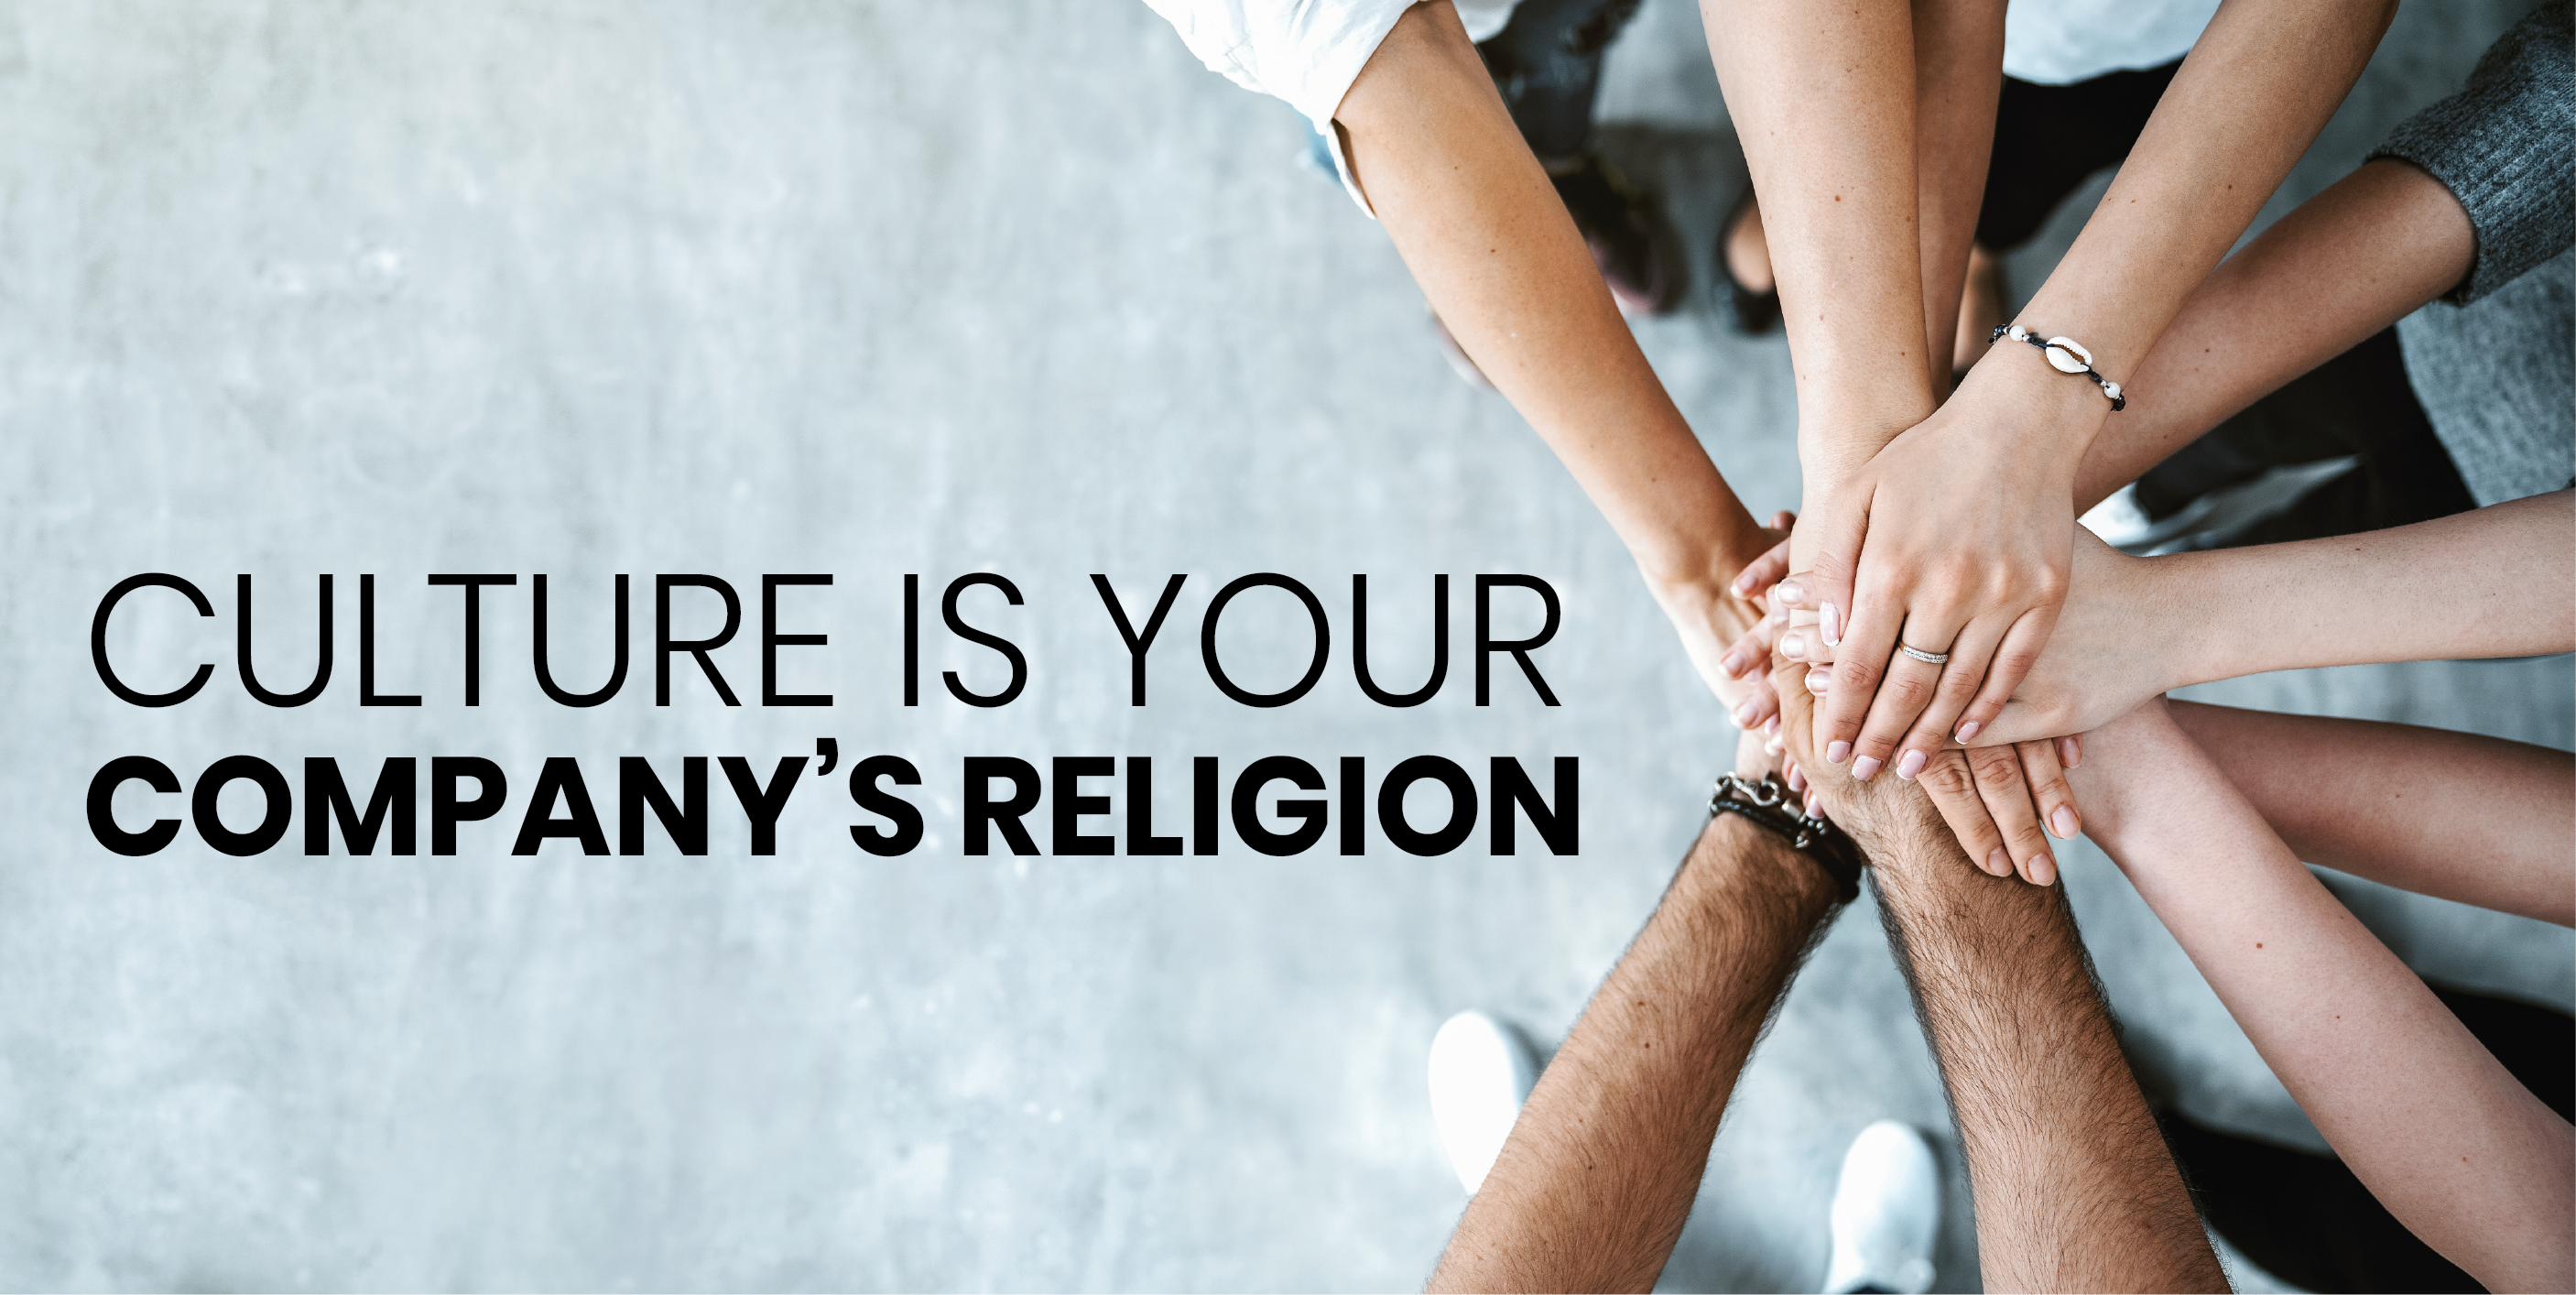 Your Culture is Your Company's Religion